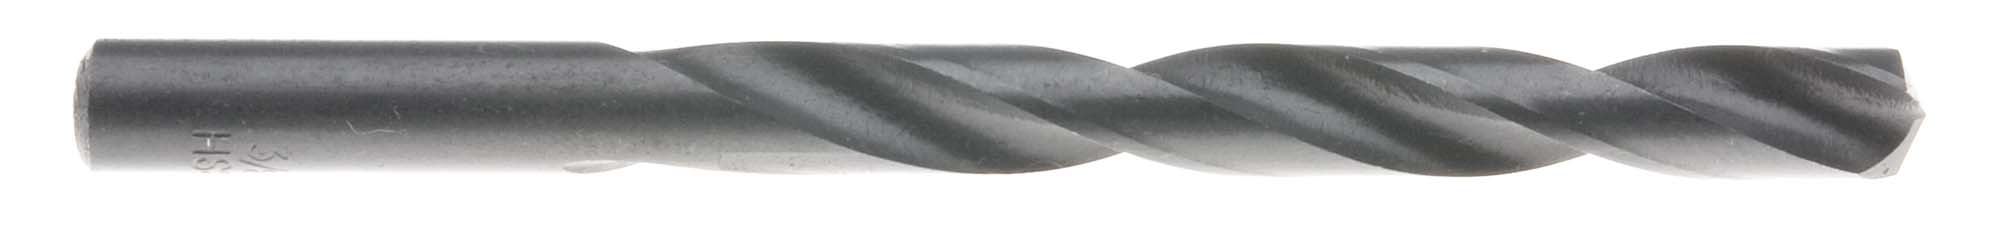 "JSP-3/32  3/32"" Heavy Duty 135 Degree Split Point Jobber Length Drill Bit, High Speed Steel"